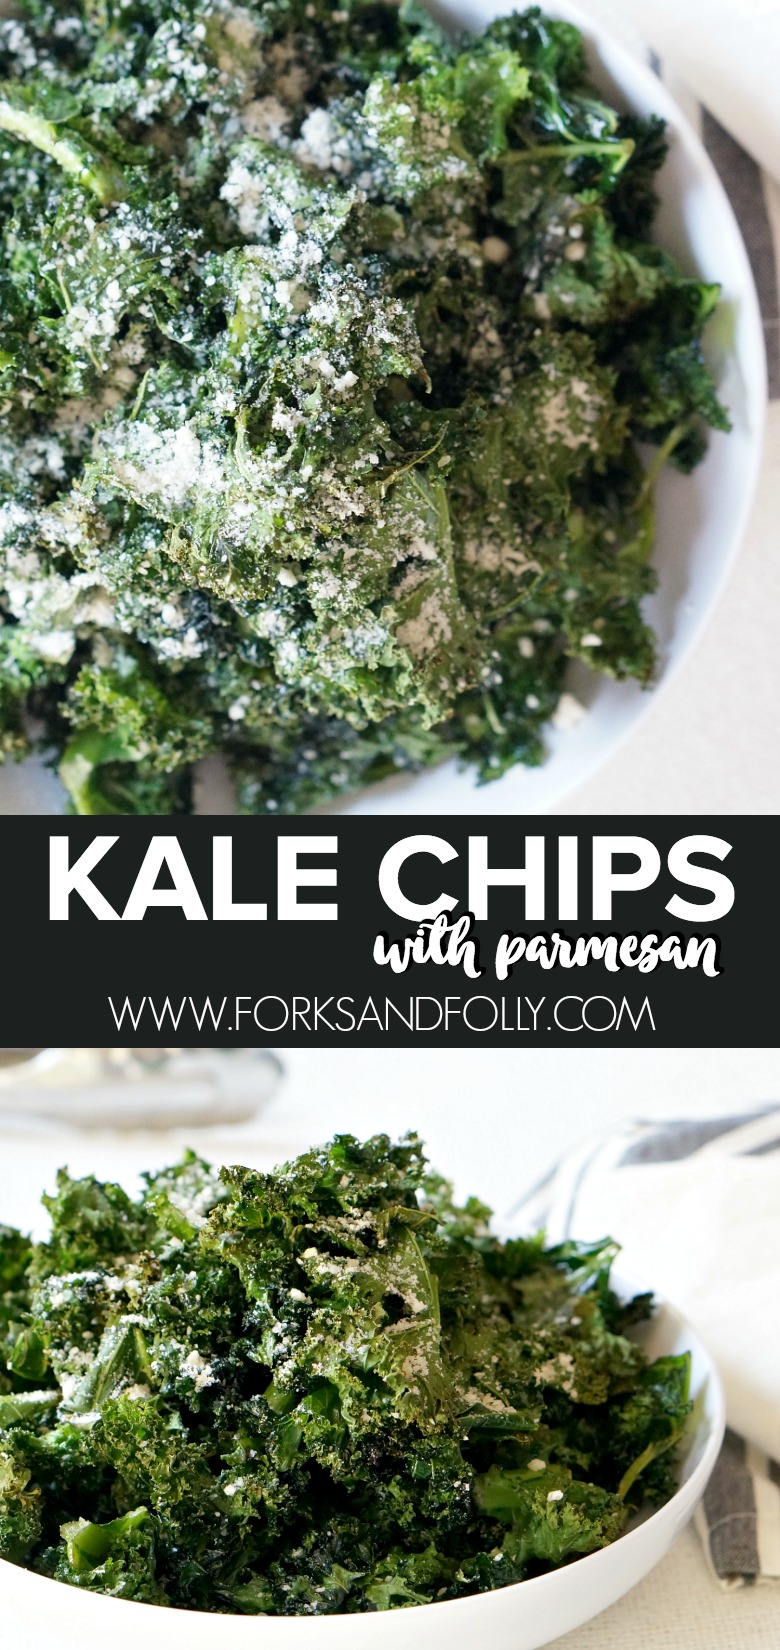 If Popeye had known about kale, I'm pretty sure he'd have swapped out his cans of spinach for these tasty, roasted kale chips with Parmesan.